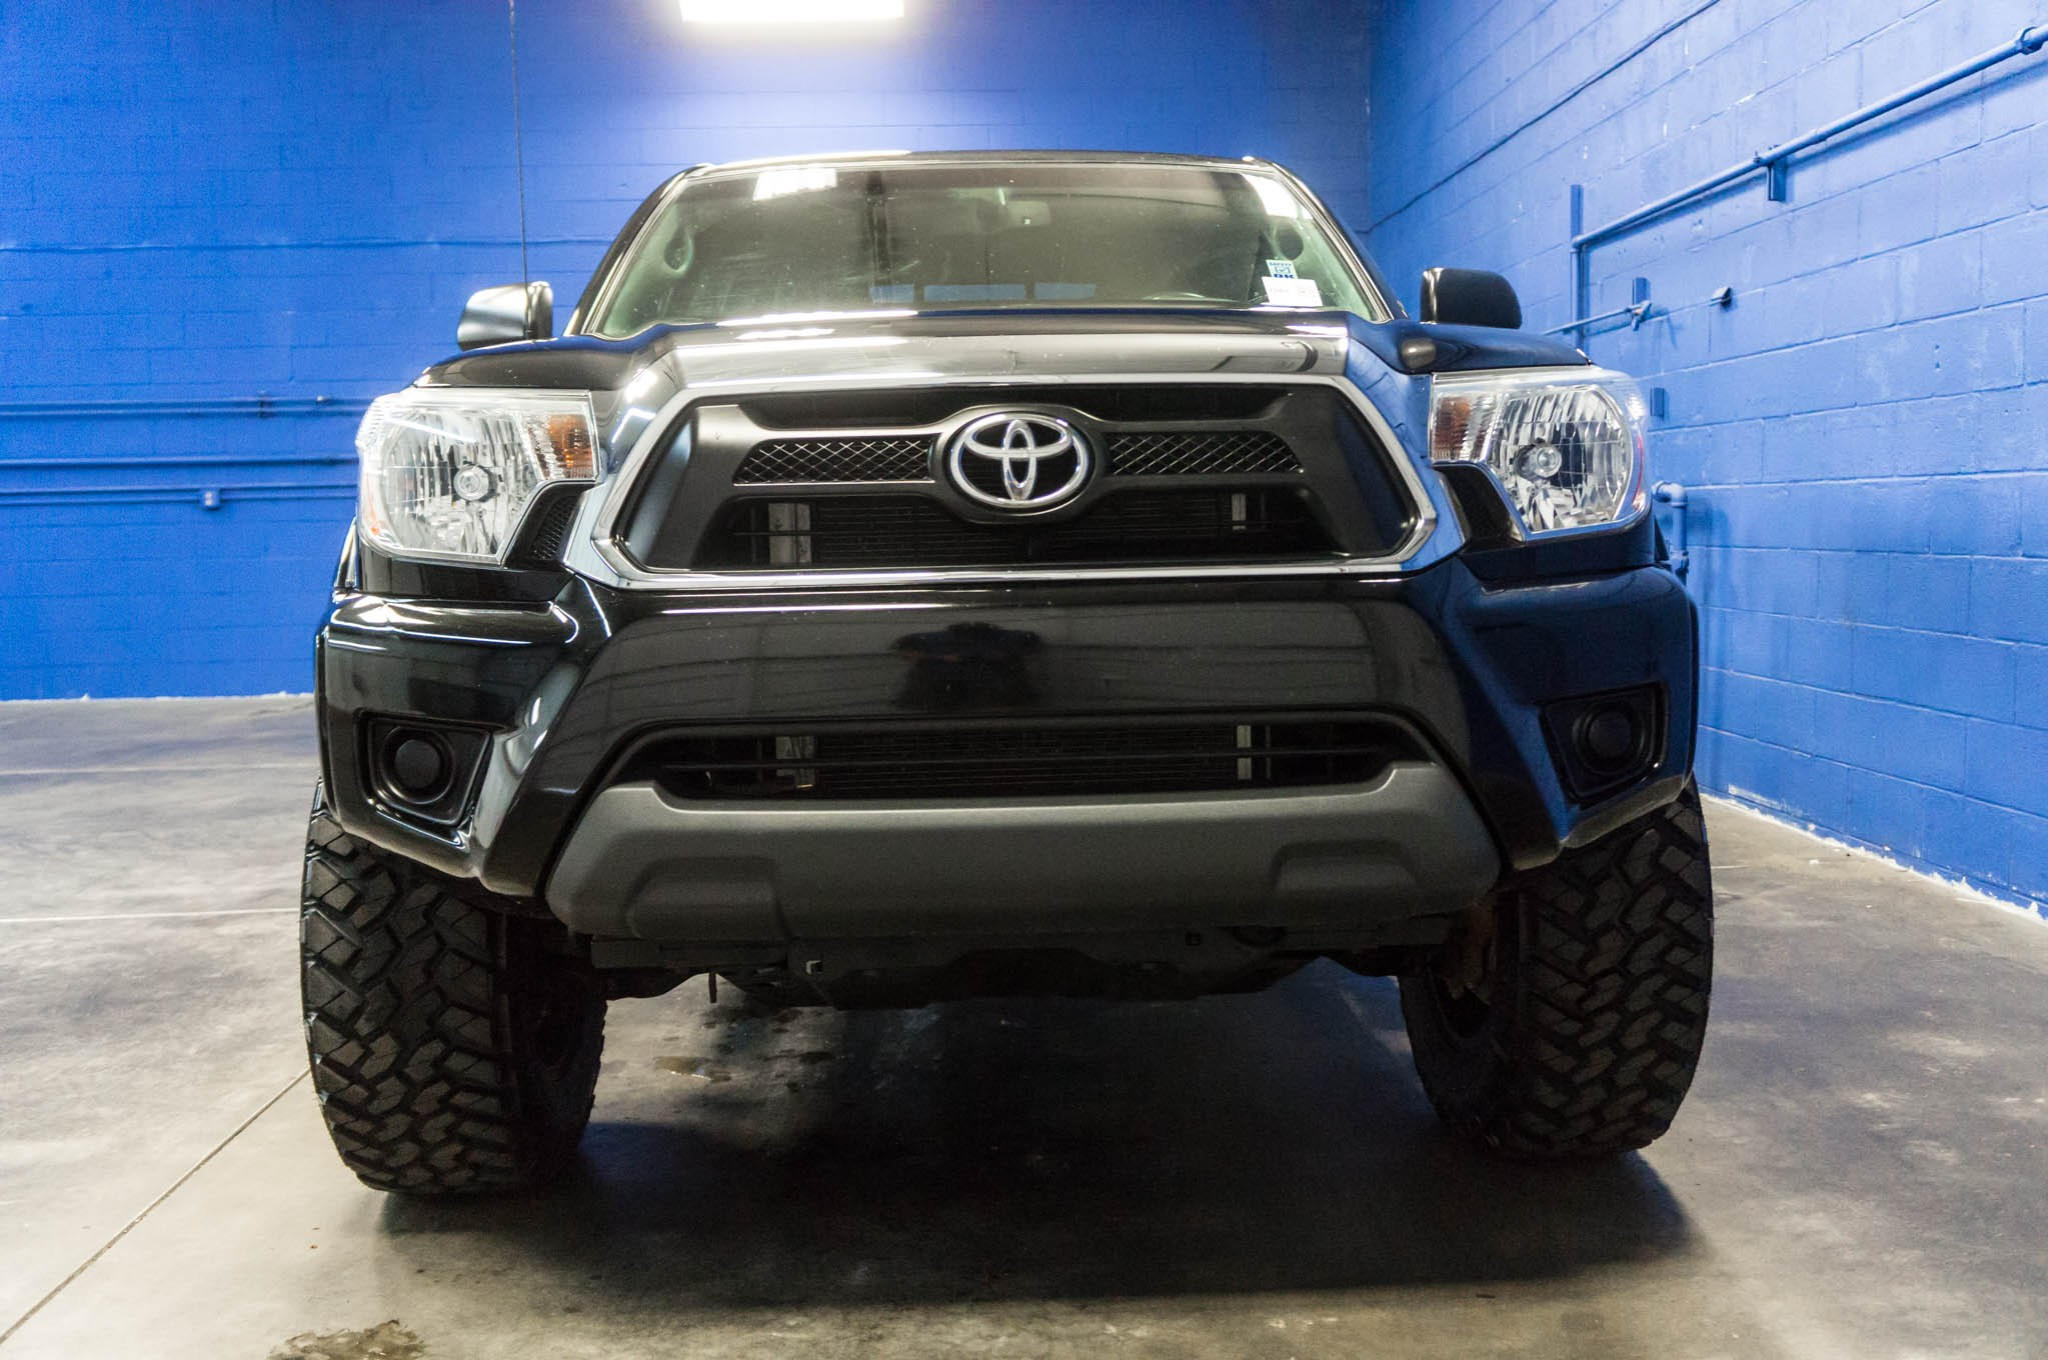 used lifted 2013 toyota tacoma sr5 4x4 truck for sale 33963. Black Bedroom Furniture Sets. Home Design Ideas